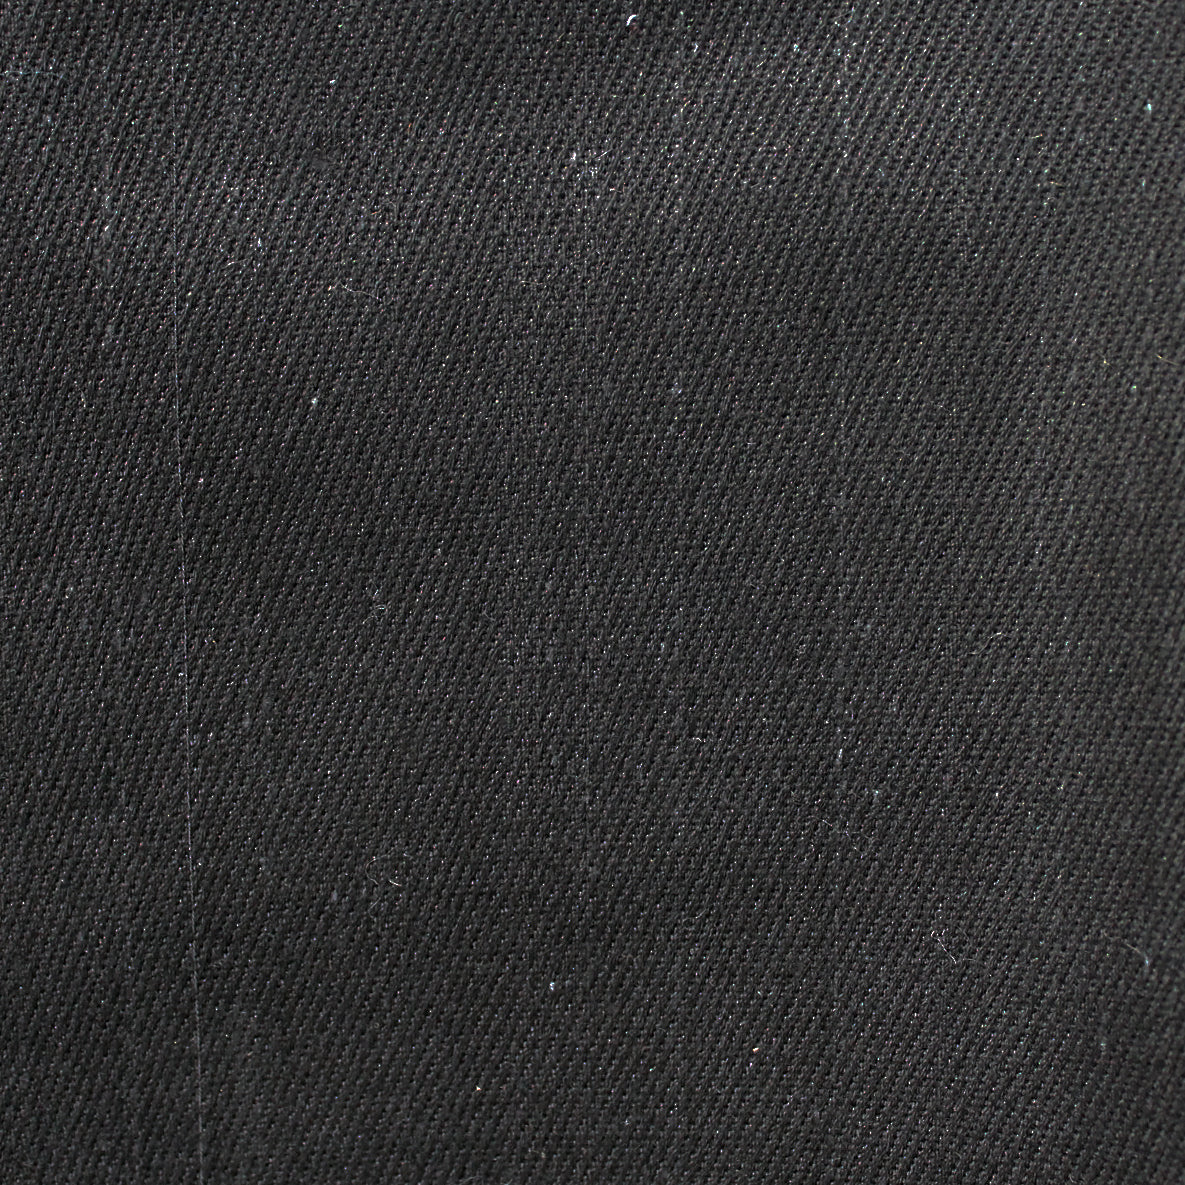 Black handwoven selvedge denim fabric with red selvedge line